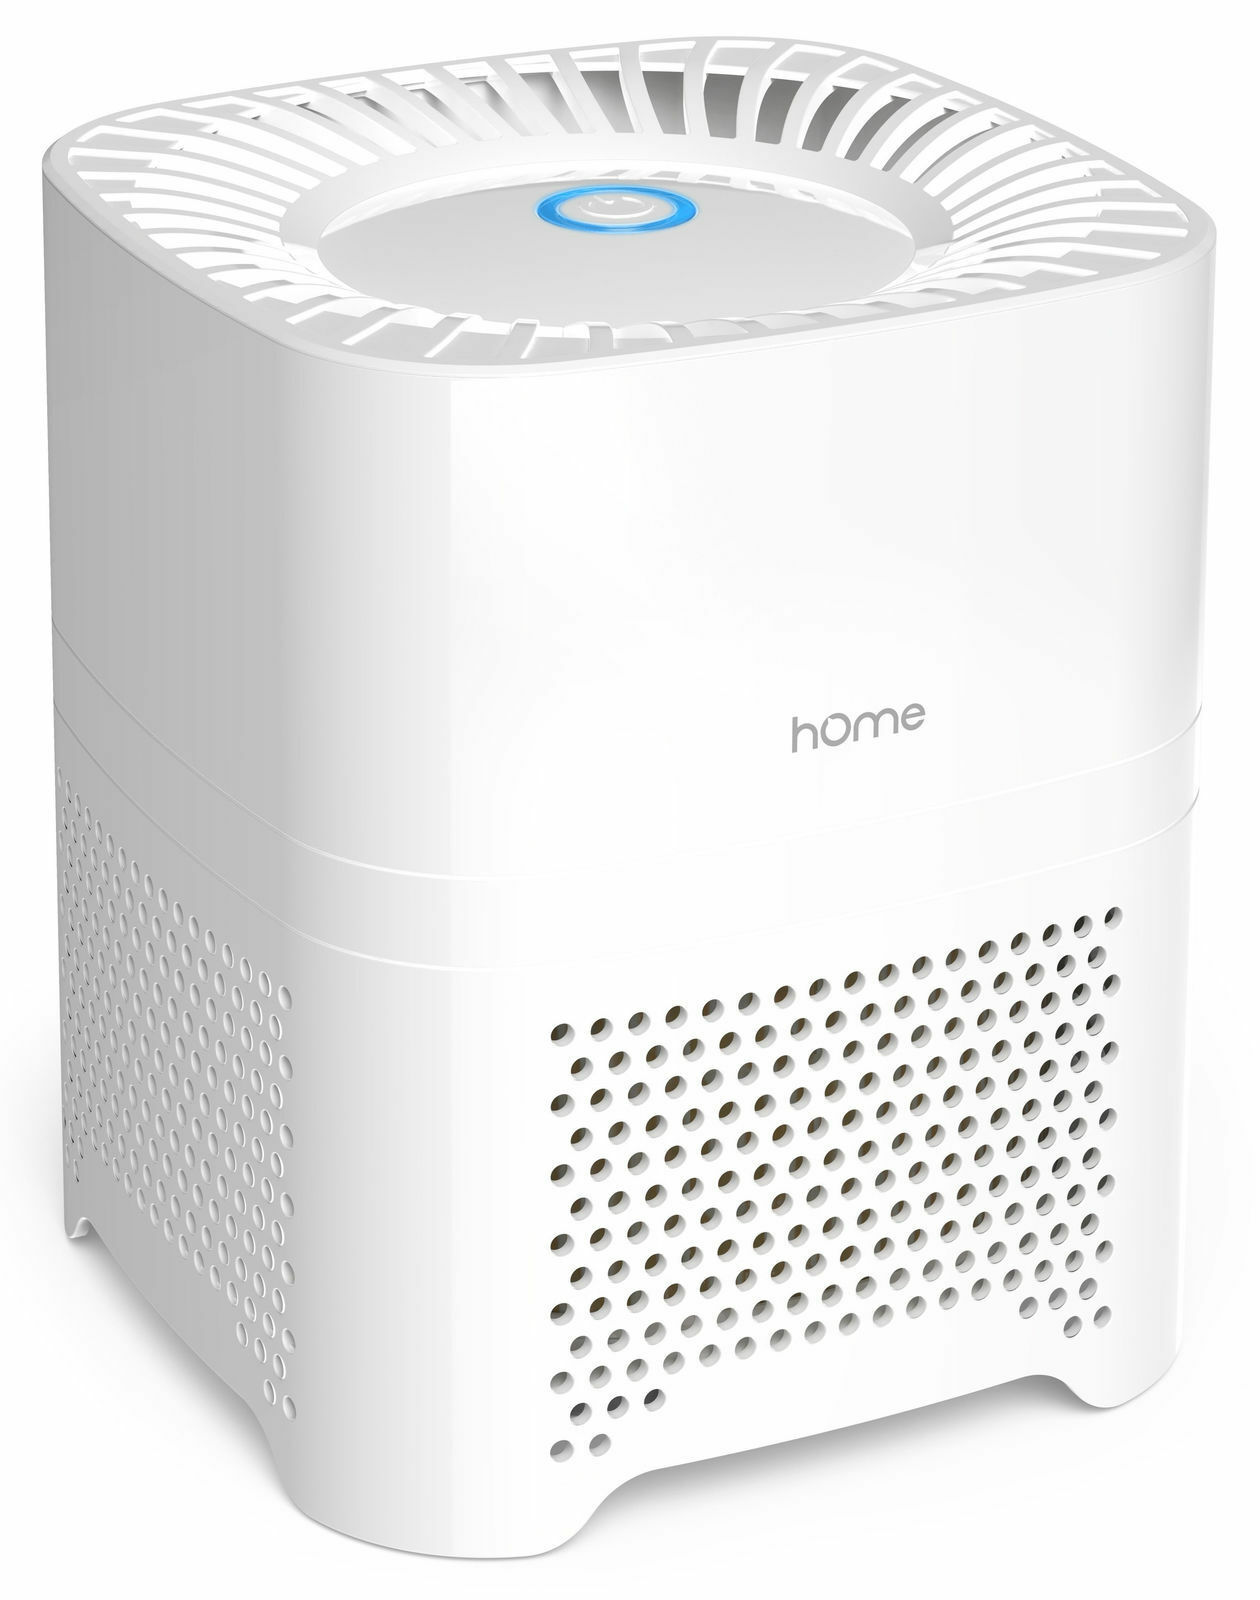 hOme 3 in 1 Mini Portable Air Purifier HEPA Filter For Desktop Small Room